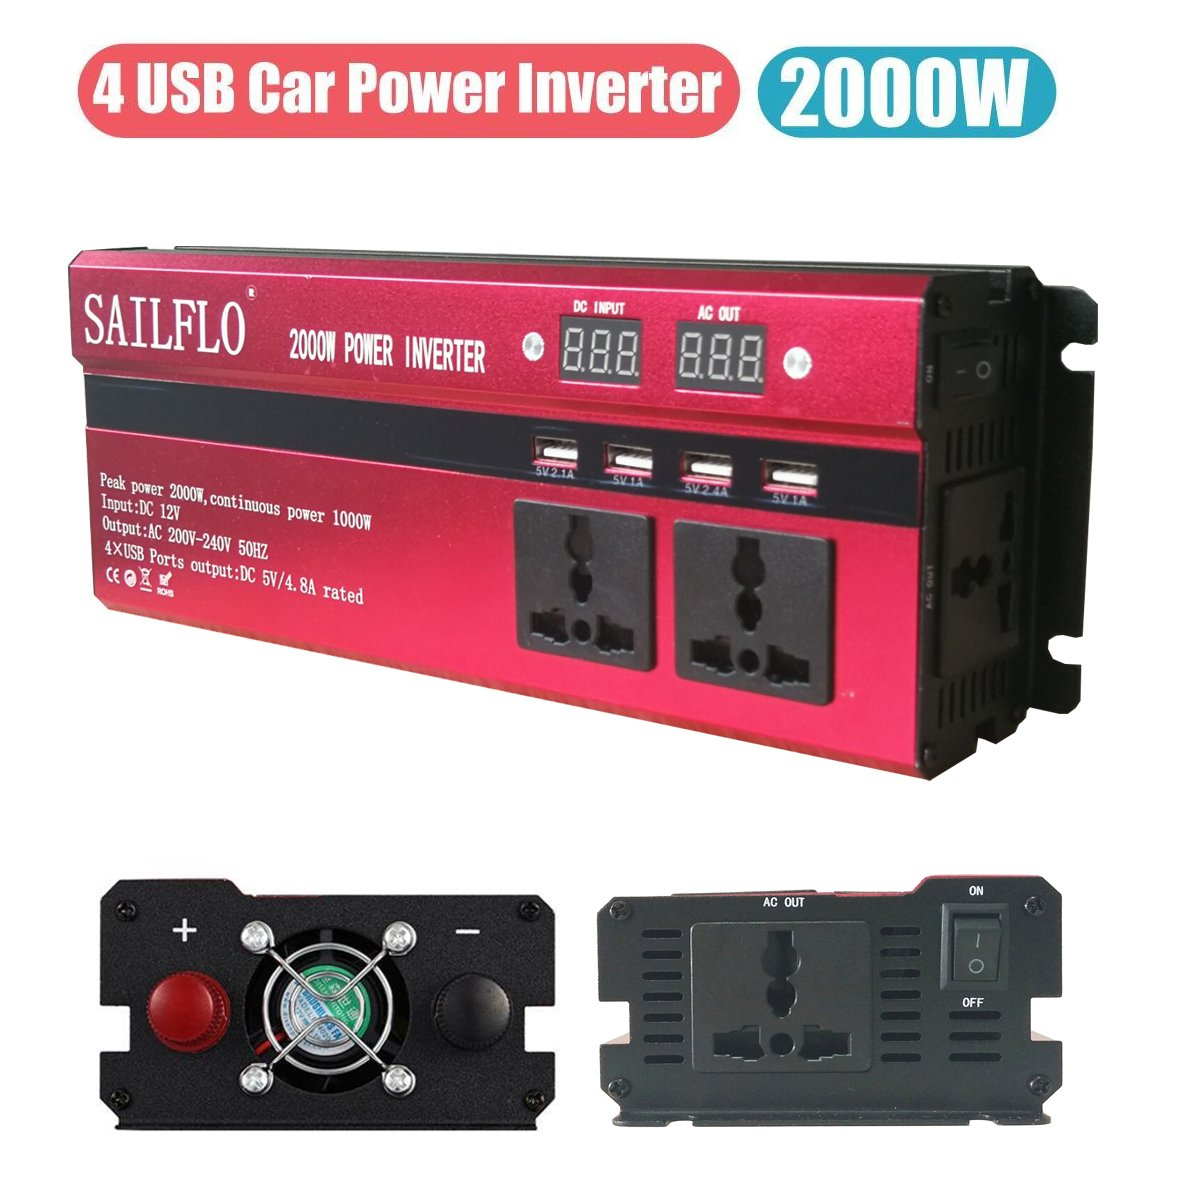 SAILFLO 2000W Peak Power Inverter DC 12V to AC 220V Car Adapter with 5A 4 USB Charging Ports